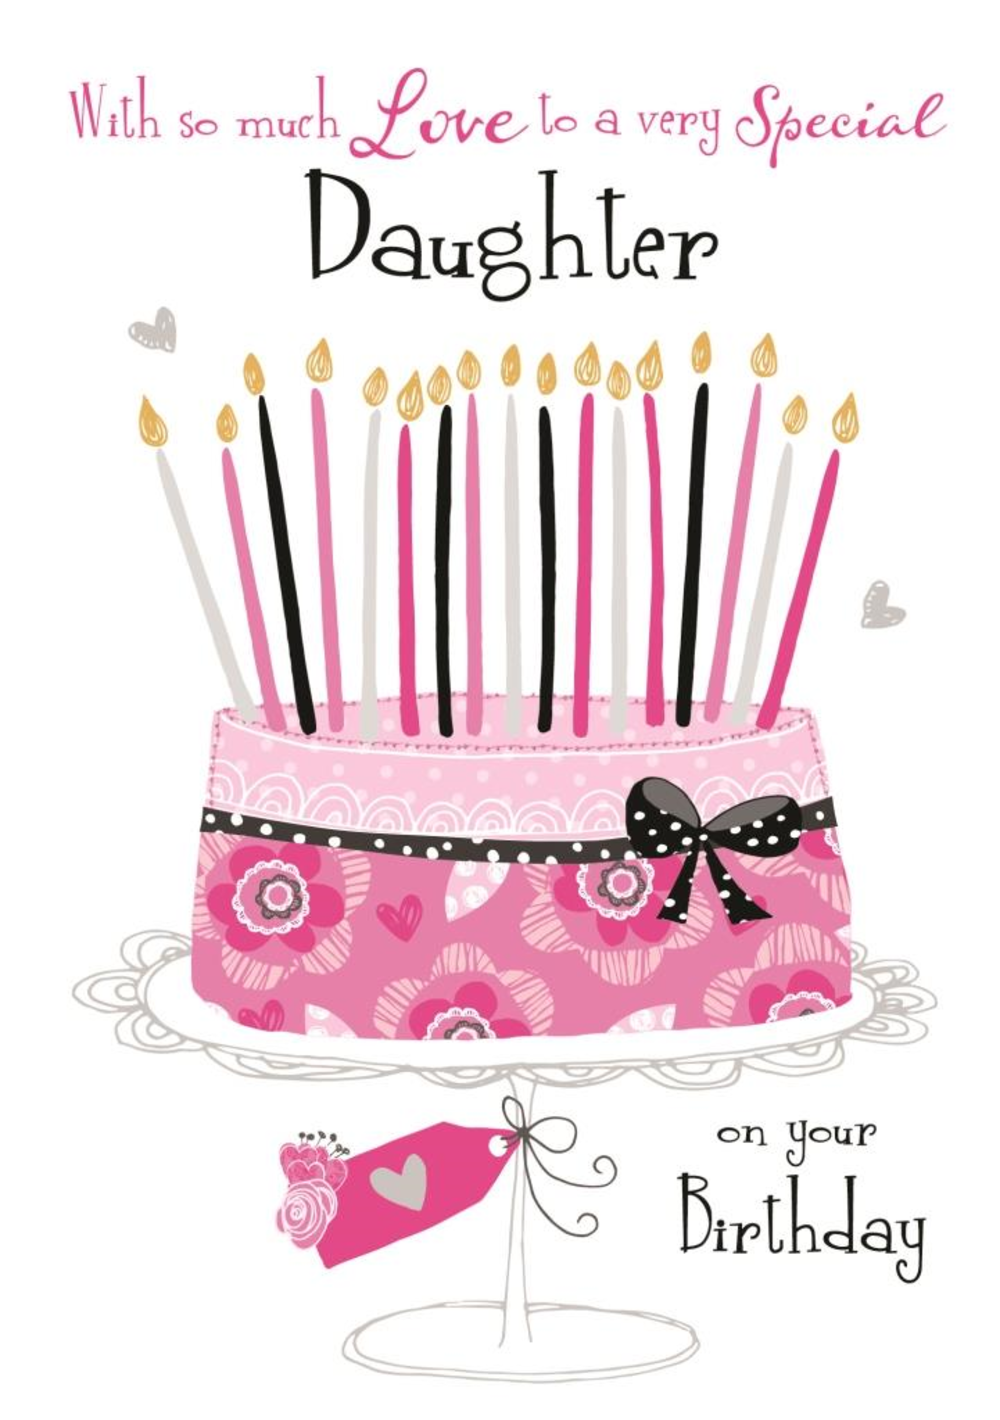 Special daughter birthday greeting card cards love kates special daughter birthday greeting card kristyandbryce Images